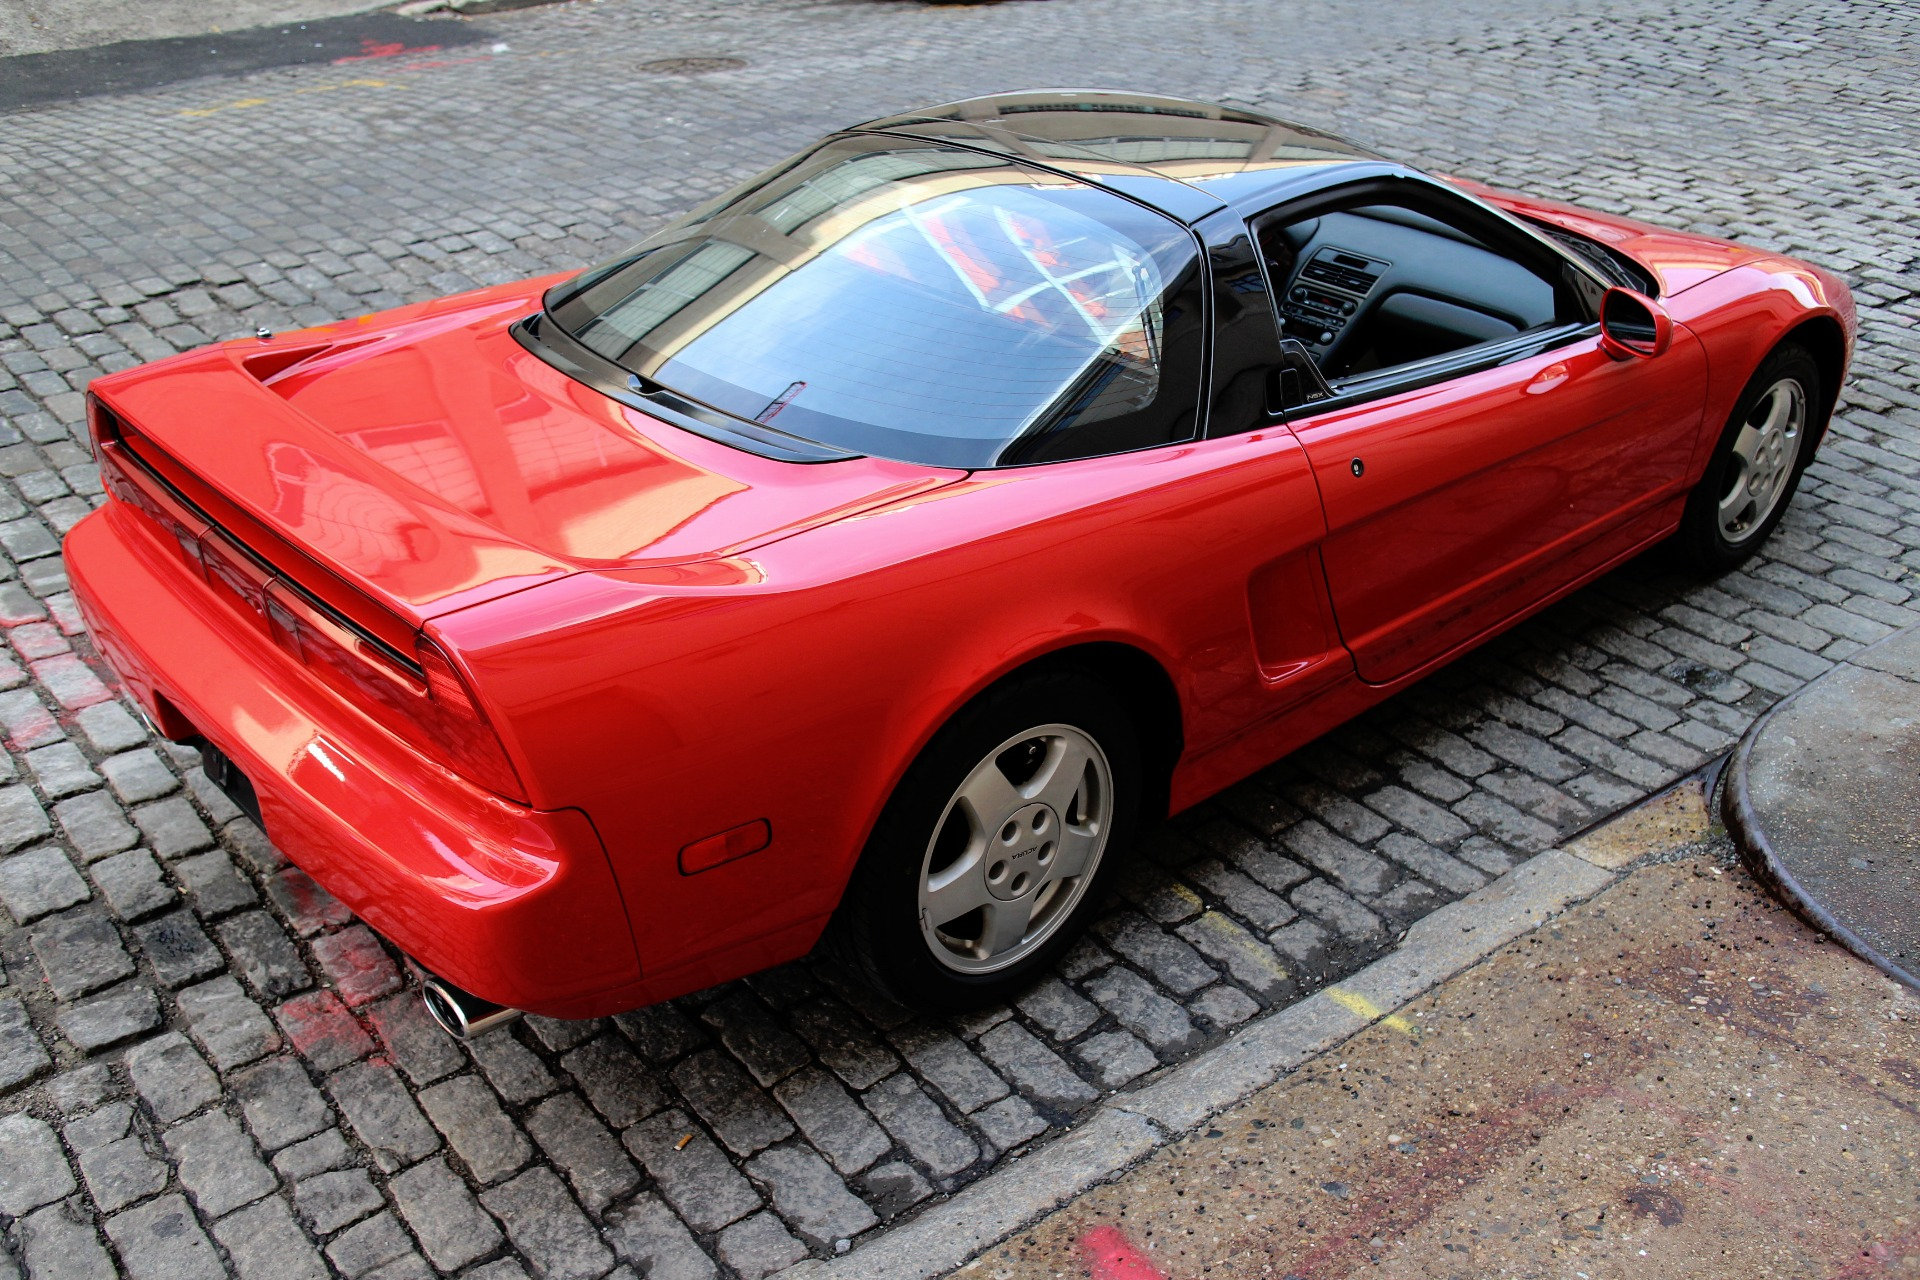 used 1991 acura nsx for sale carsforsalecom - HD1920×1280